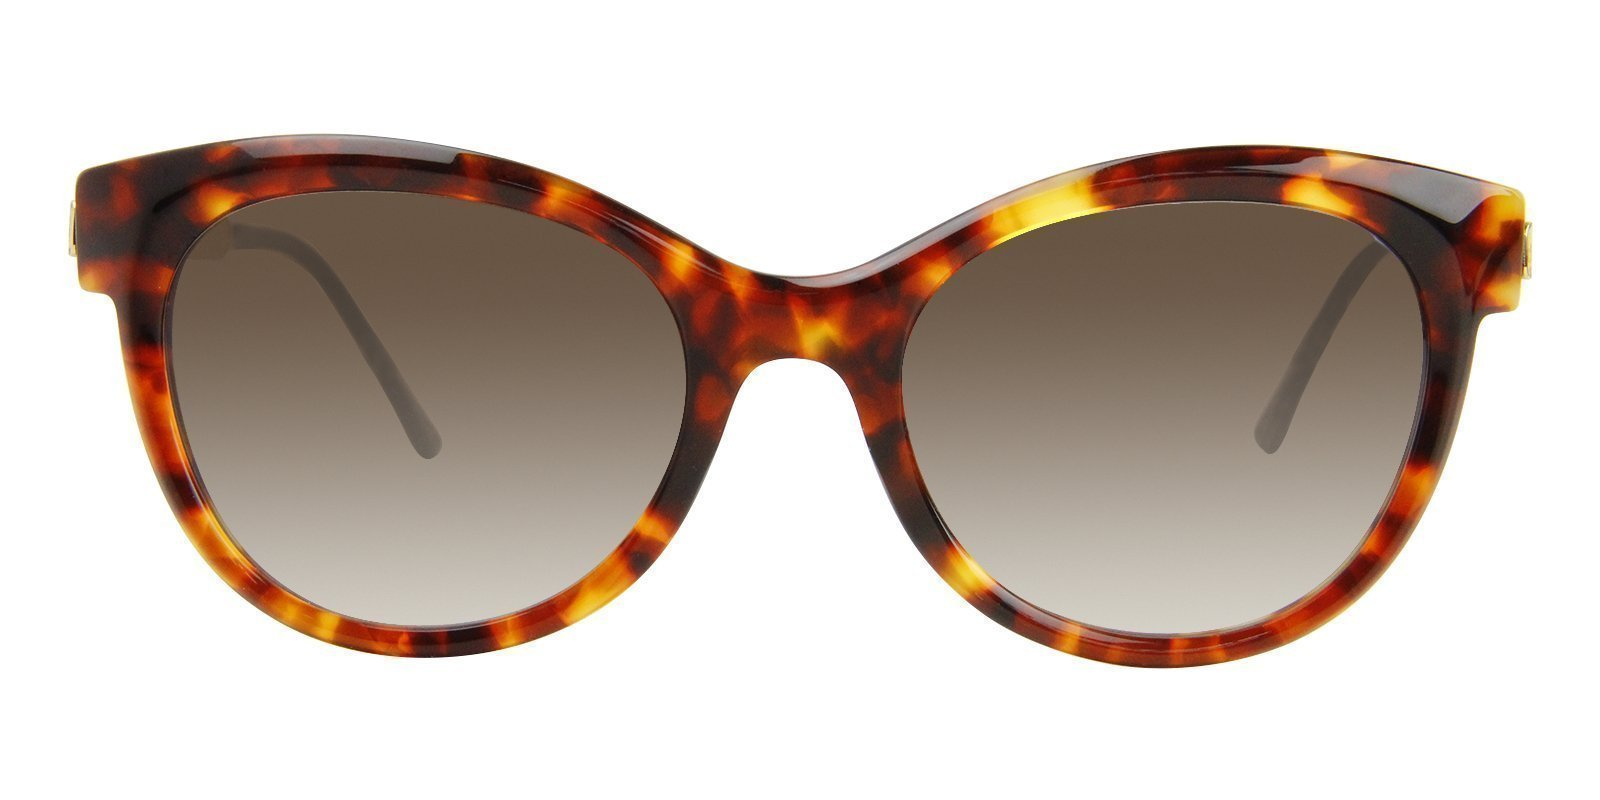 Thierry Lasry - Flirty Tortoise Cat-Eye Women Sunglasses - 53mm-Sunglasses-Designer Eyes